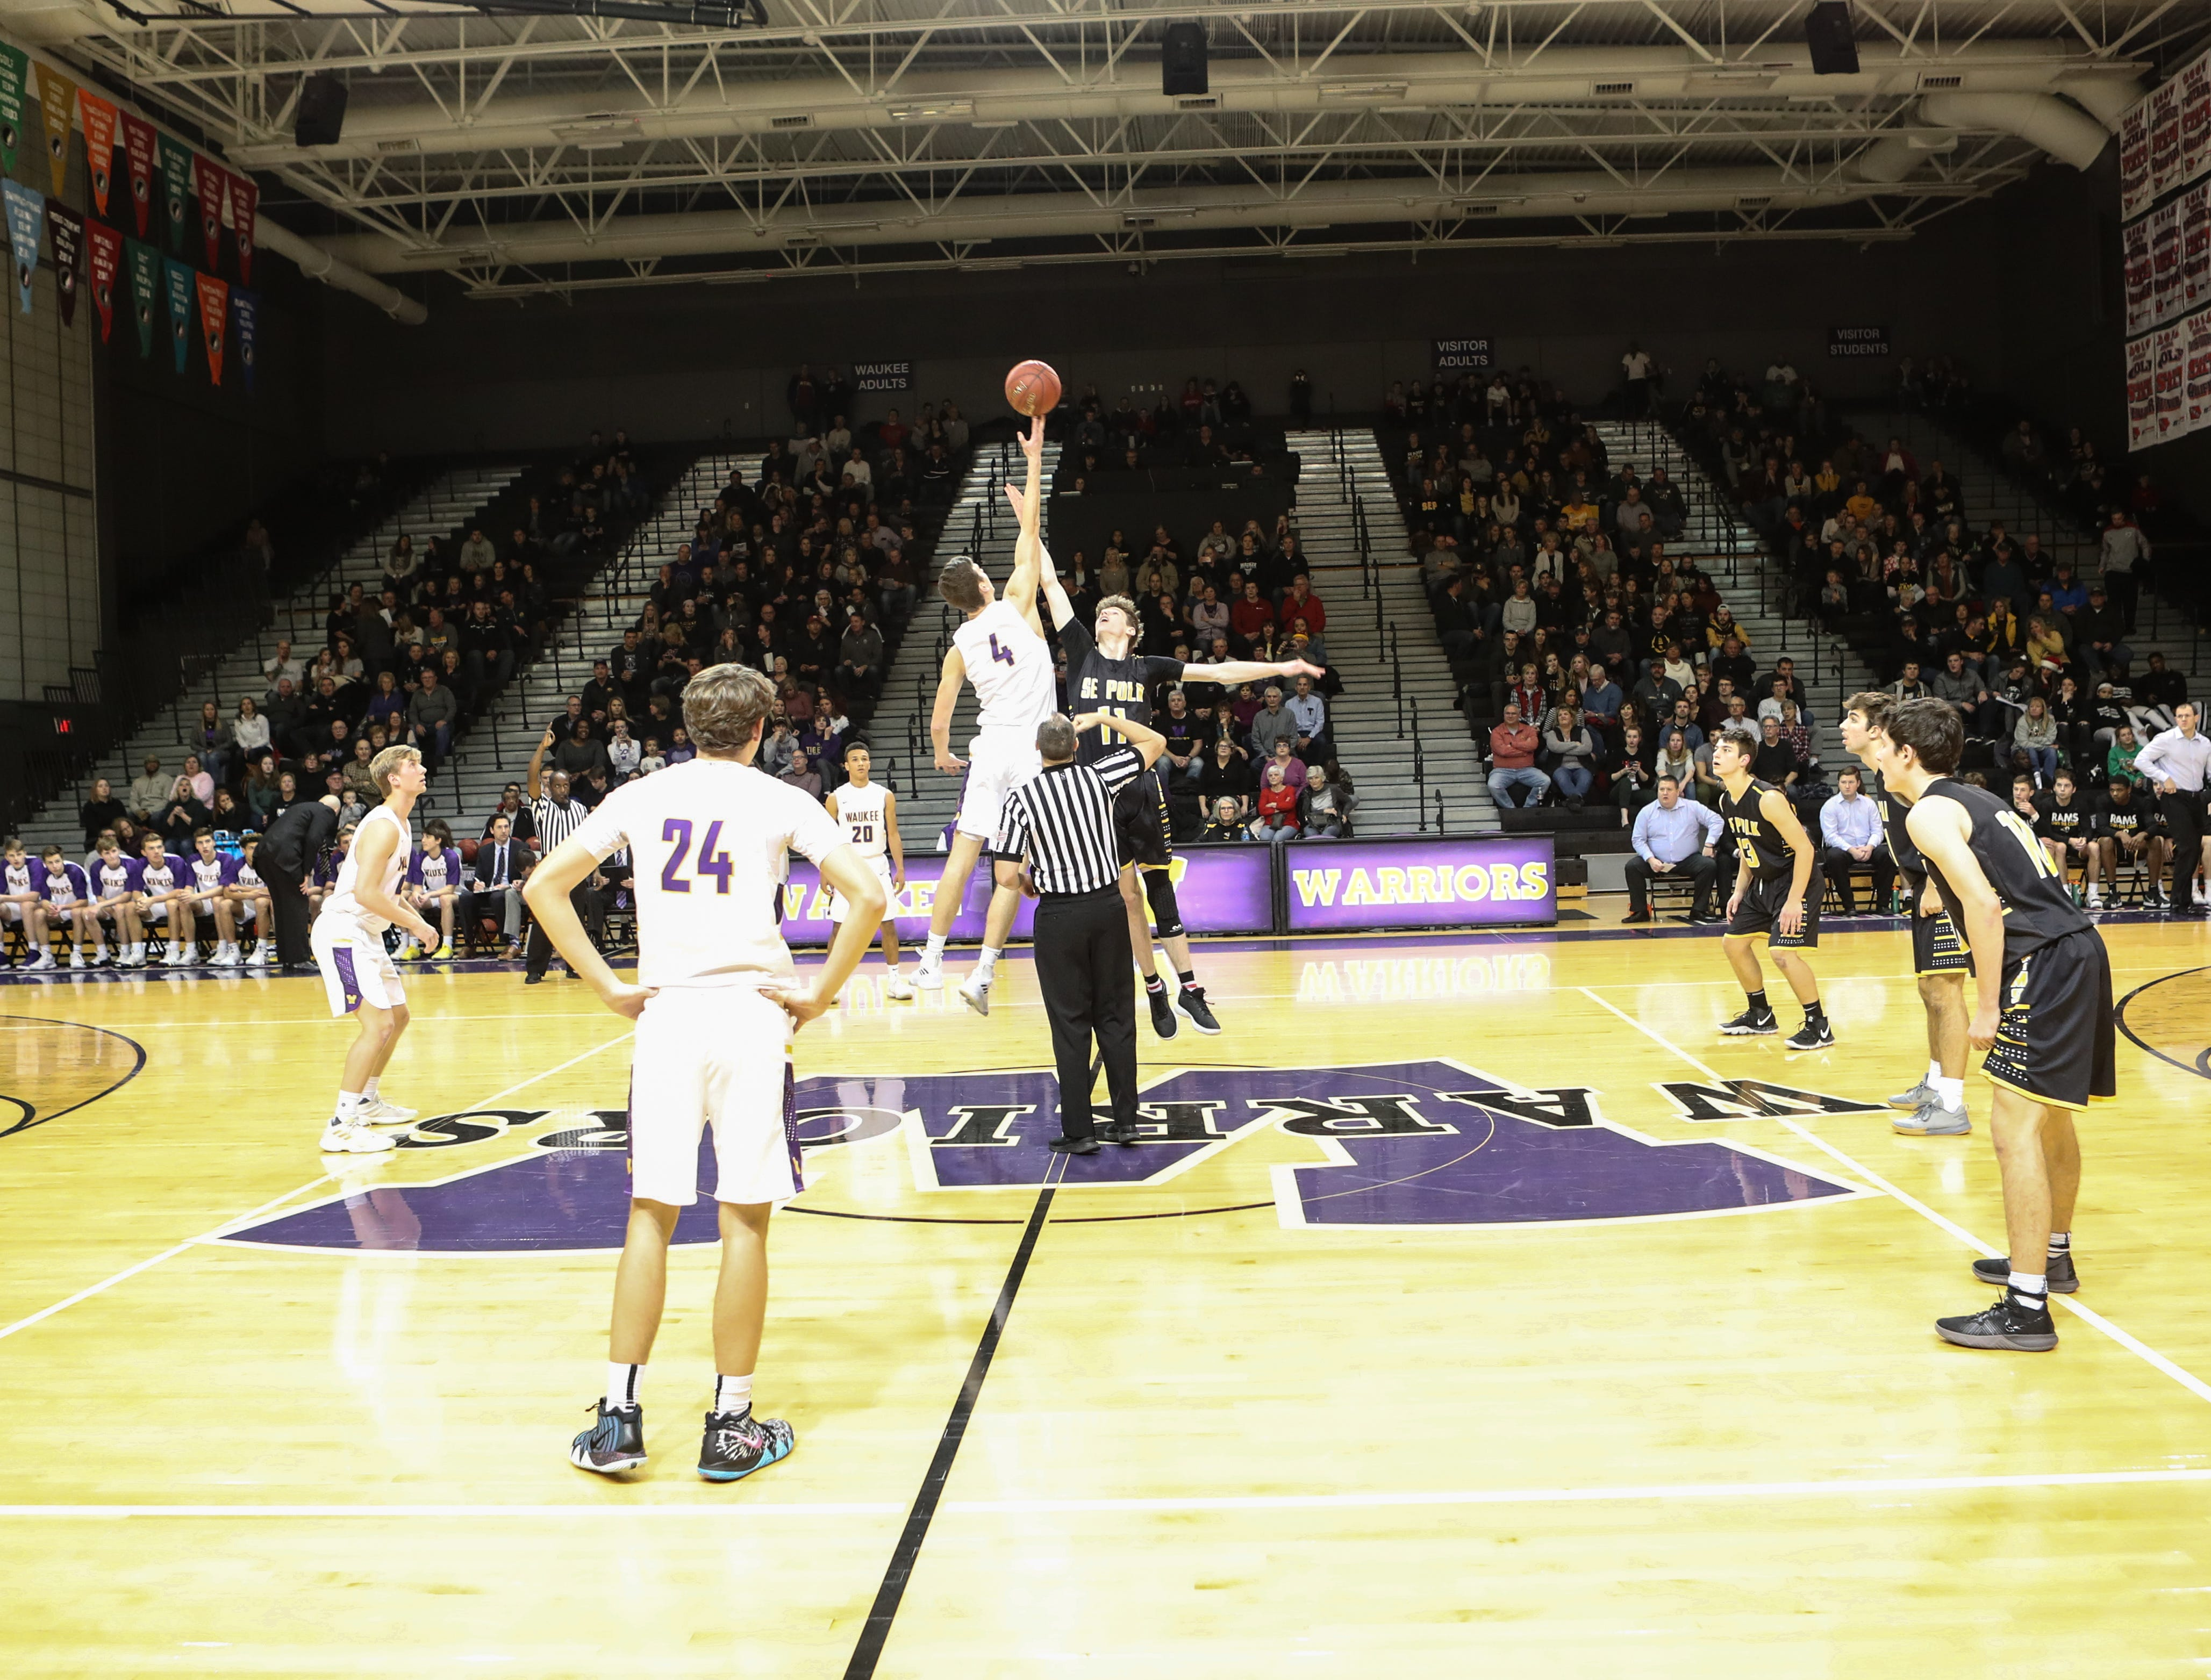 Dec 21, 2018; Waukee IA  USA; Waukee Warriors and Southeast Polk Rams jump to start the game  at Waukee High School. Mandatory Credit: Reese Strickland-for the register